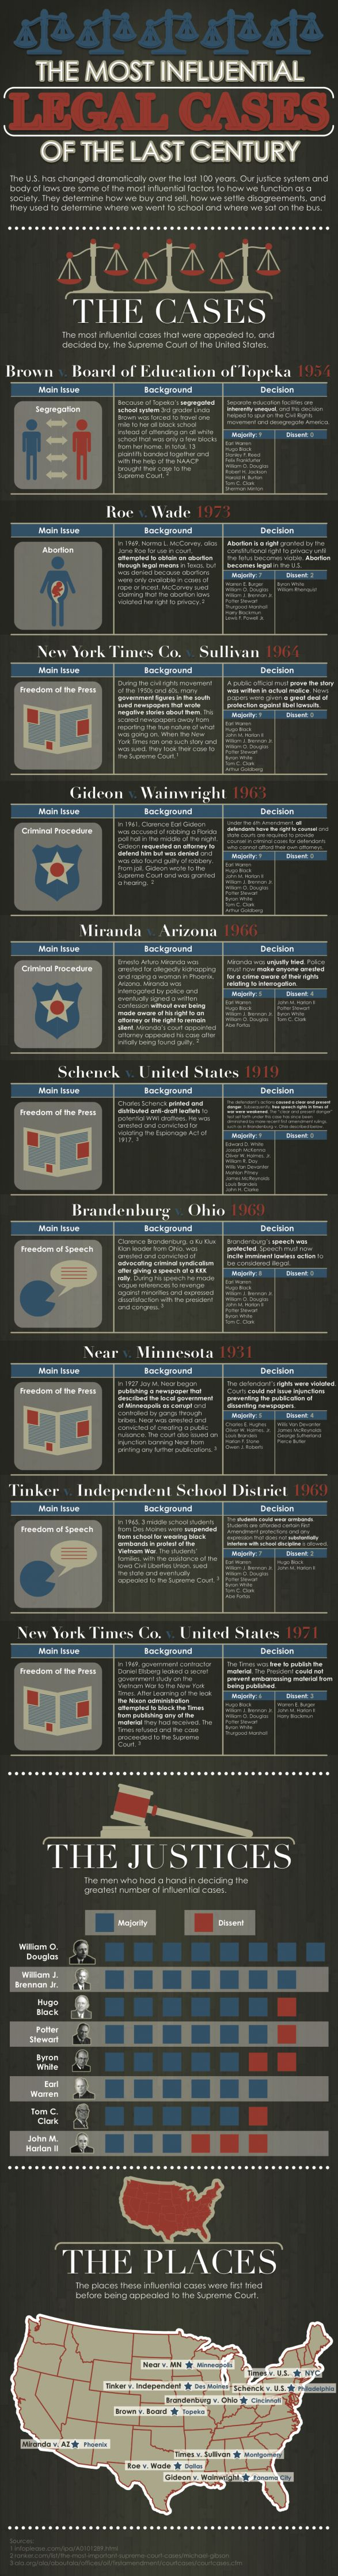 The Most Influential Legal Cases of the Last Century... Sweet! It's like a cheat-sheet for Con Law!